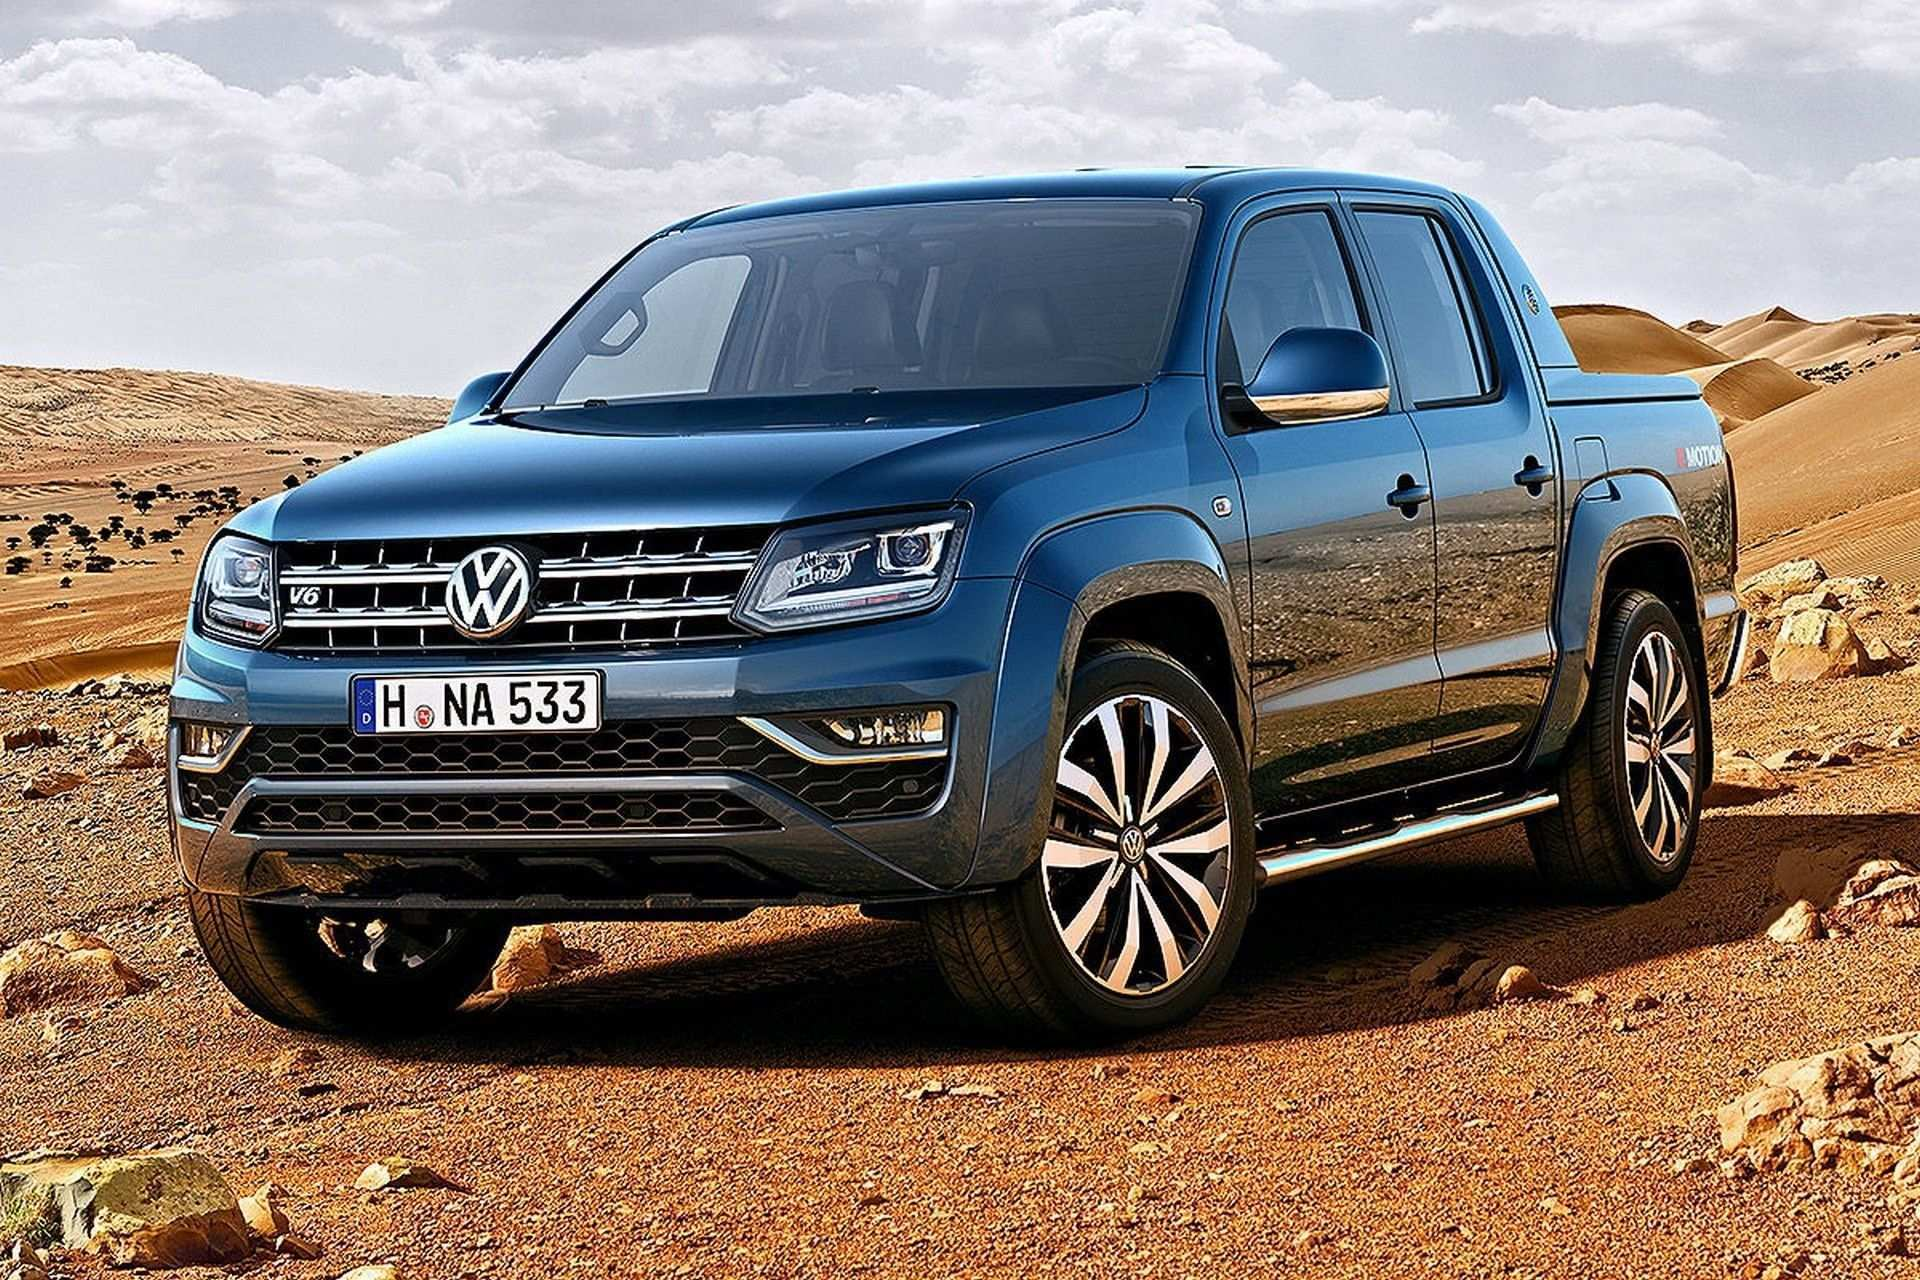 63 All New 2019 VW Amarok Concept